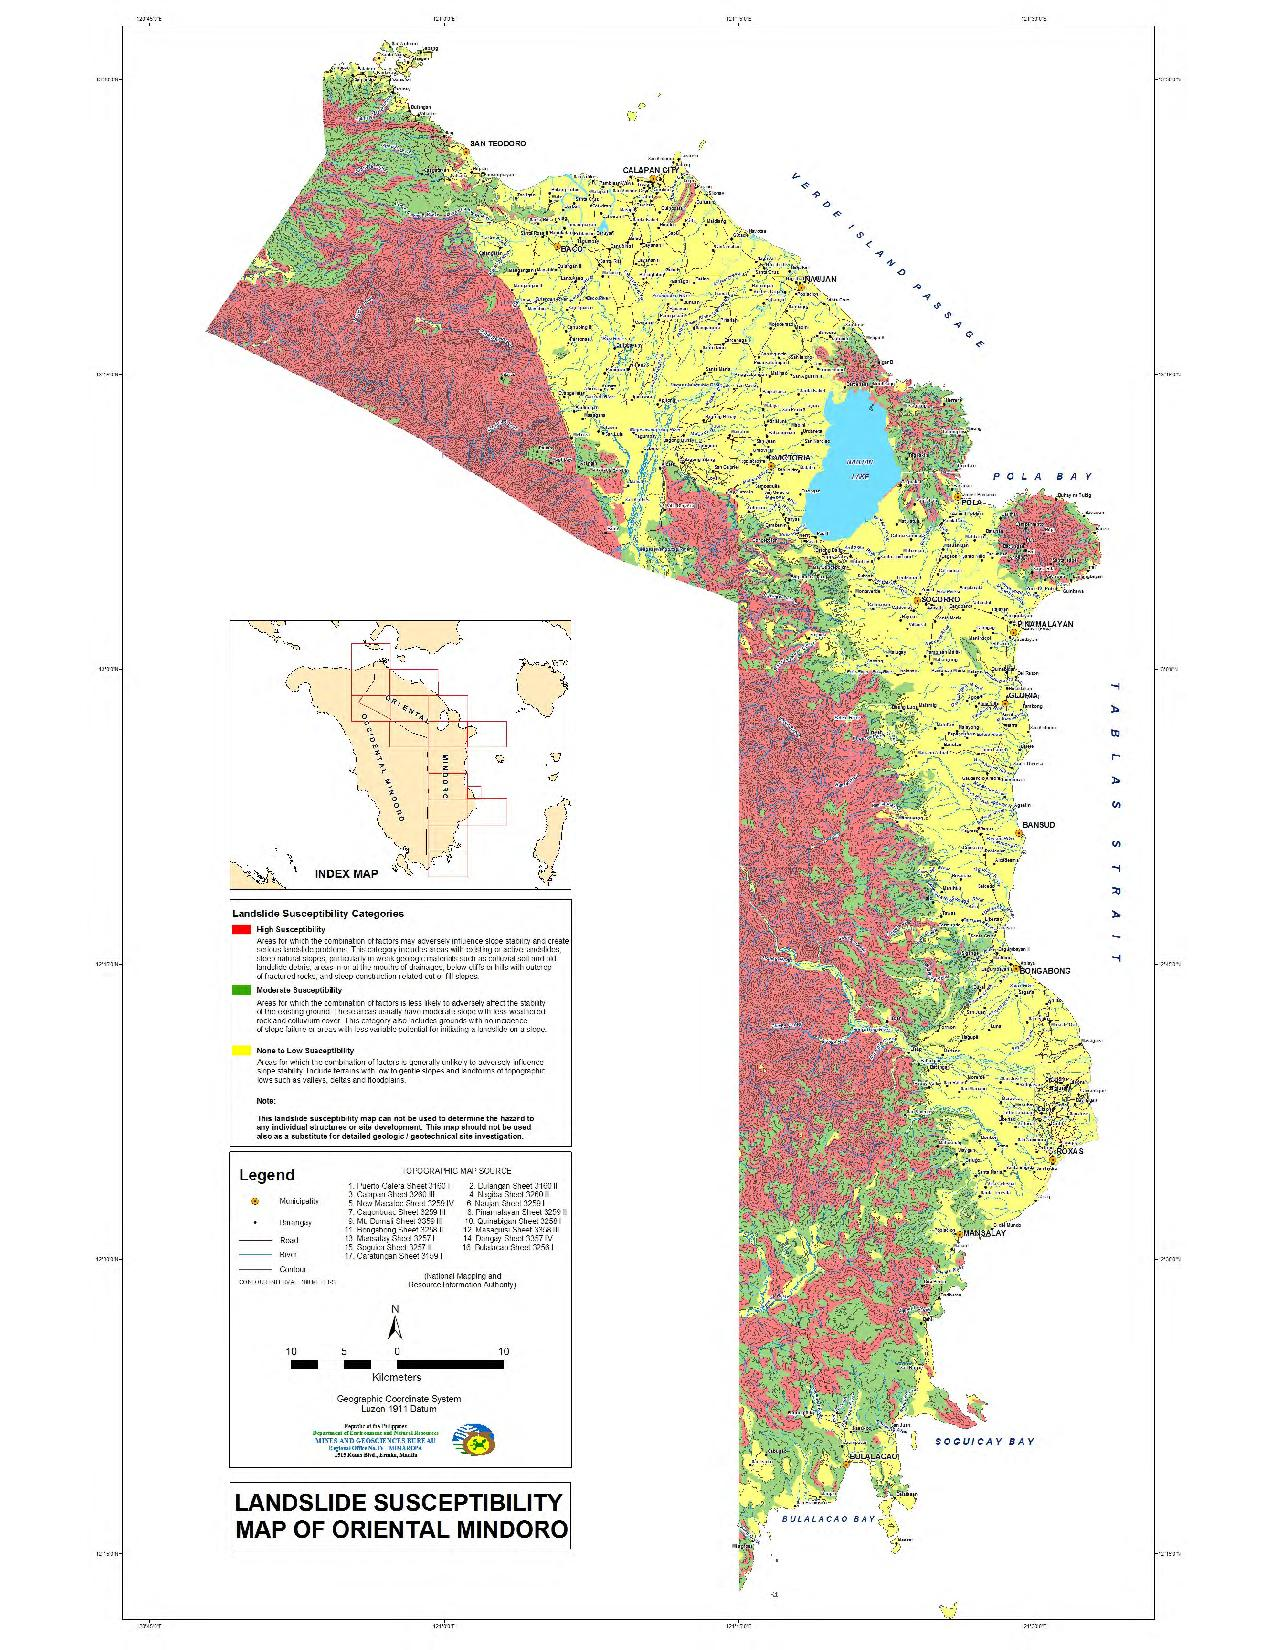 Landslide Susceptibility Map of Oriental Mindoro